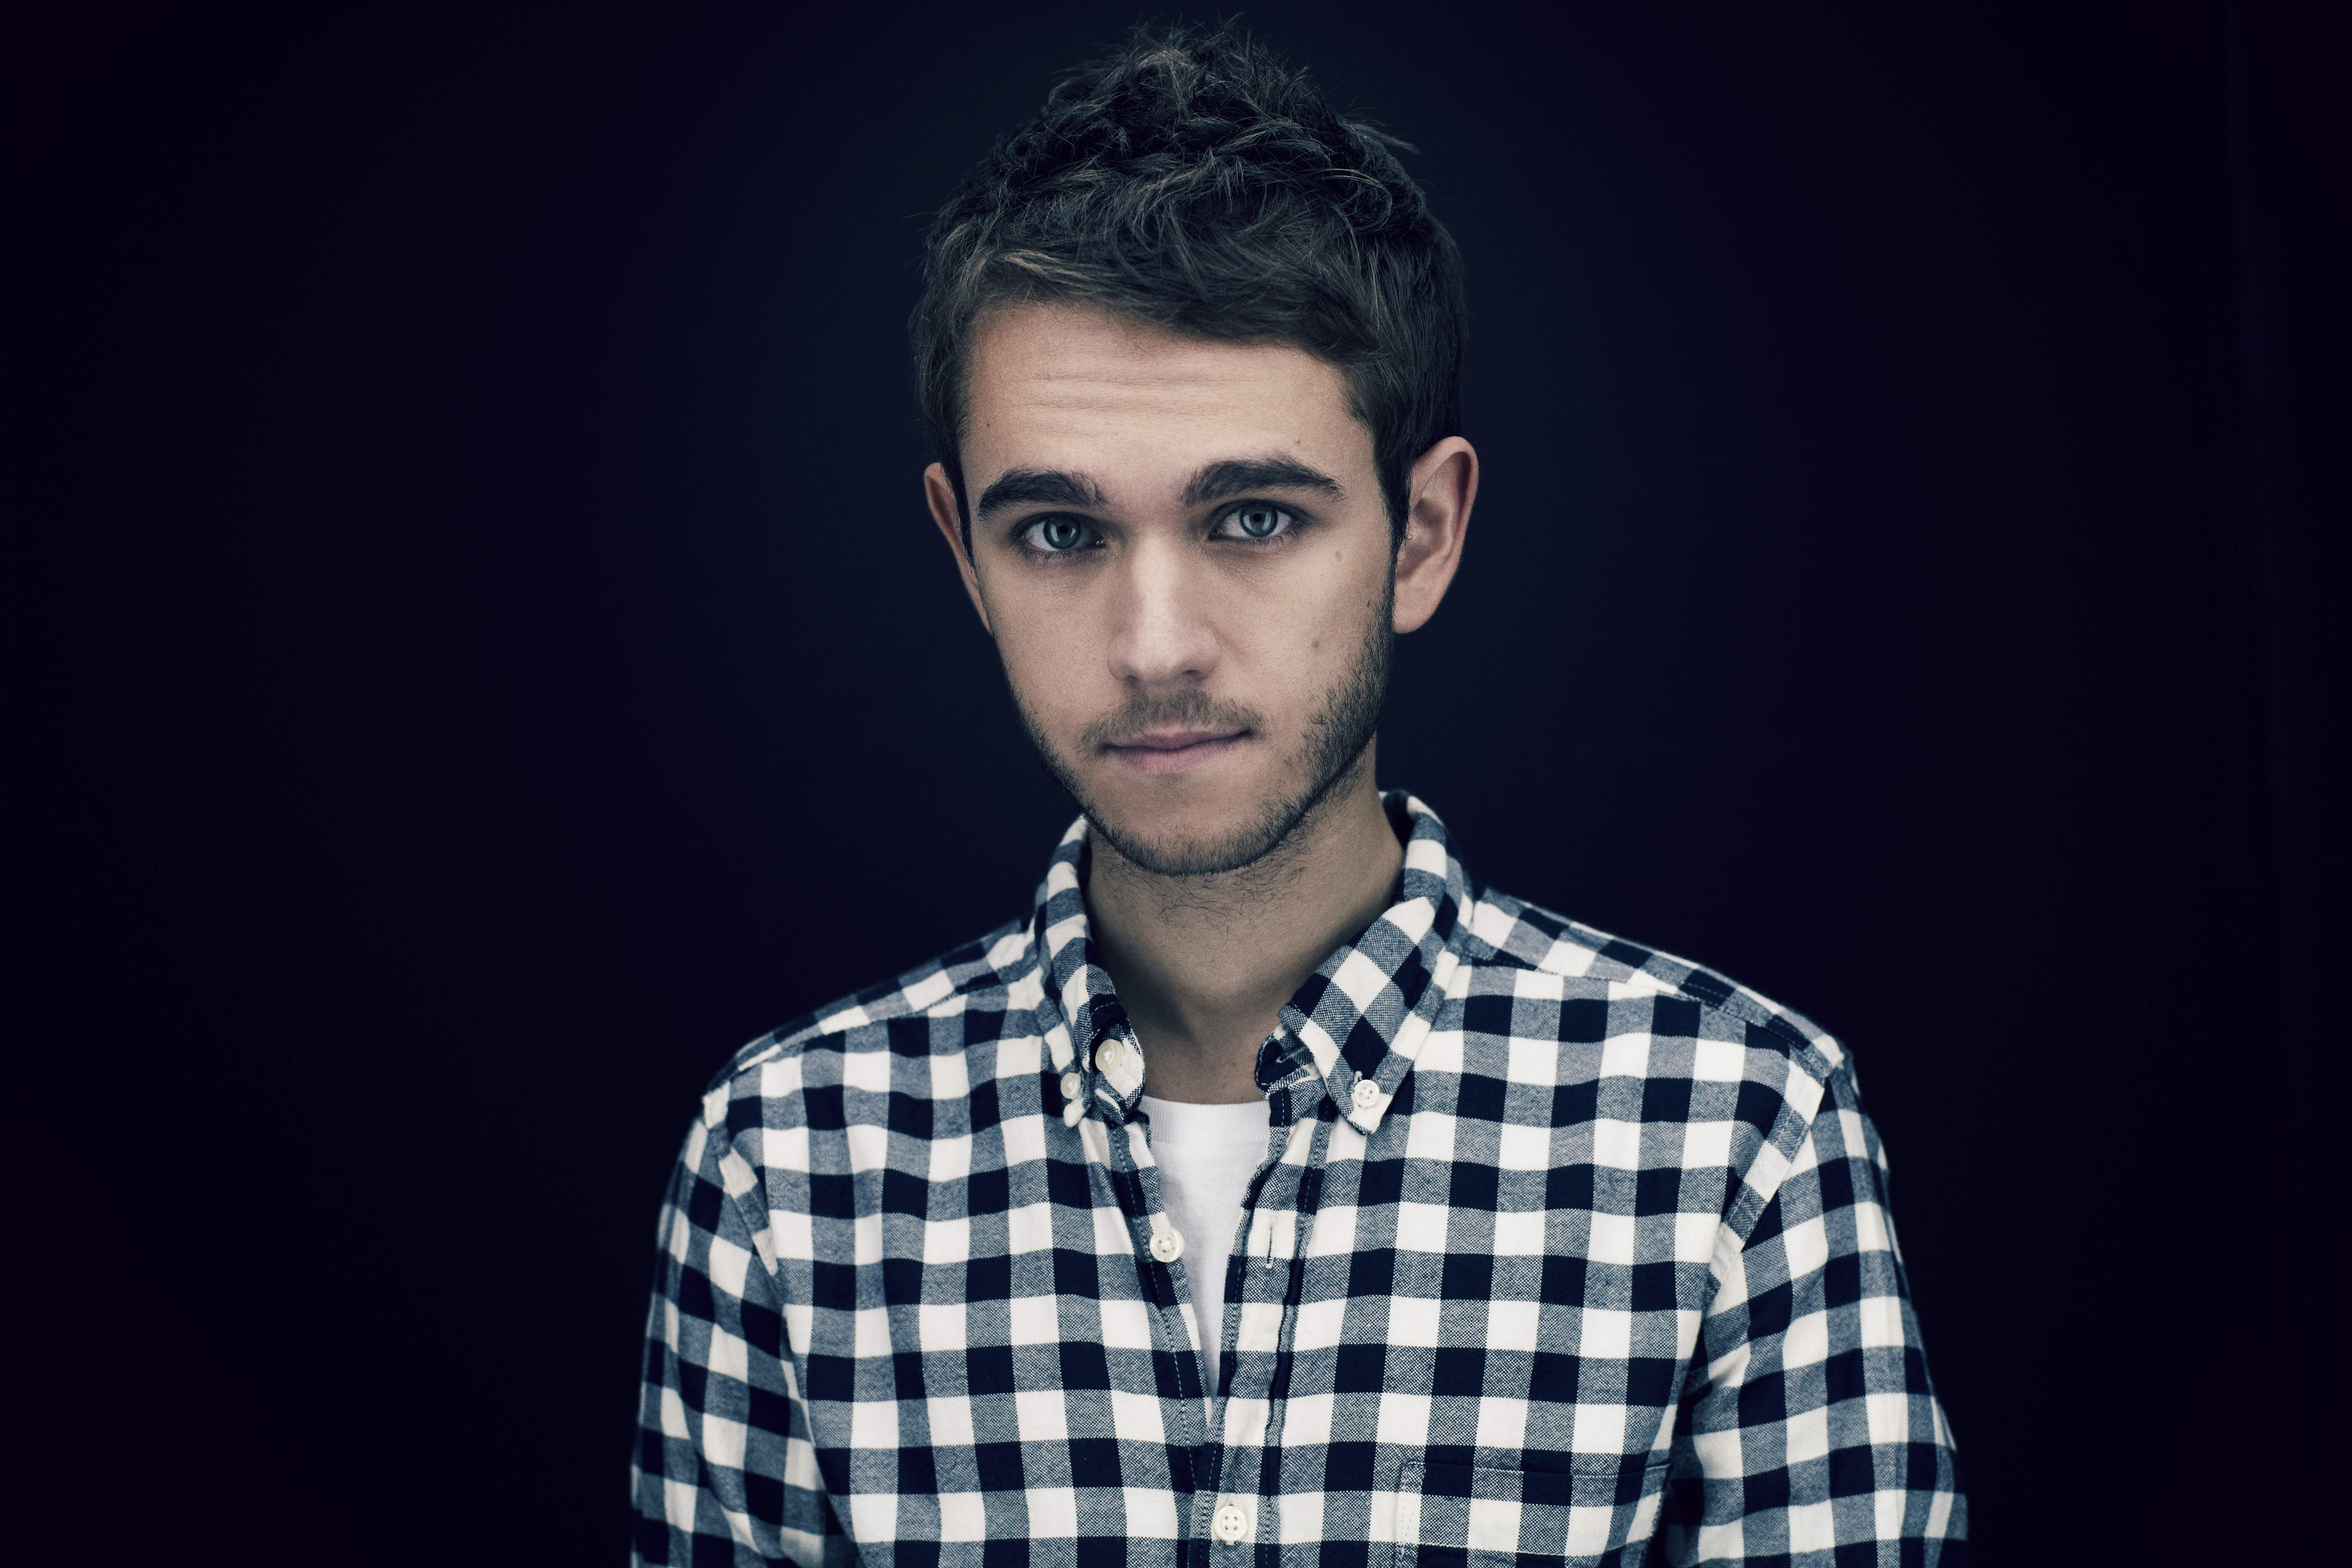 Zedd Computer Wallpapers, Desktop Backgrounds | 5616x3744 ...